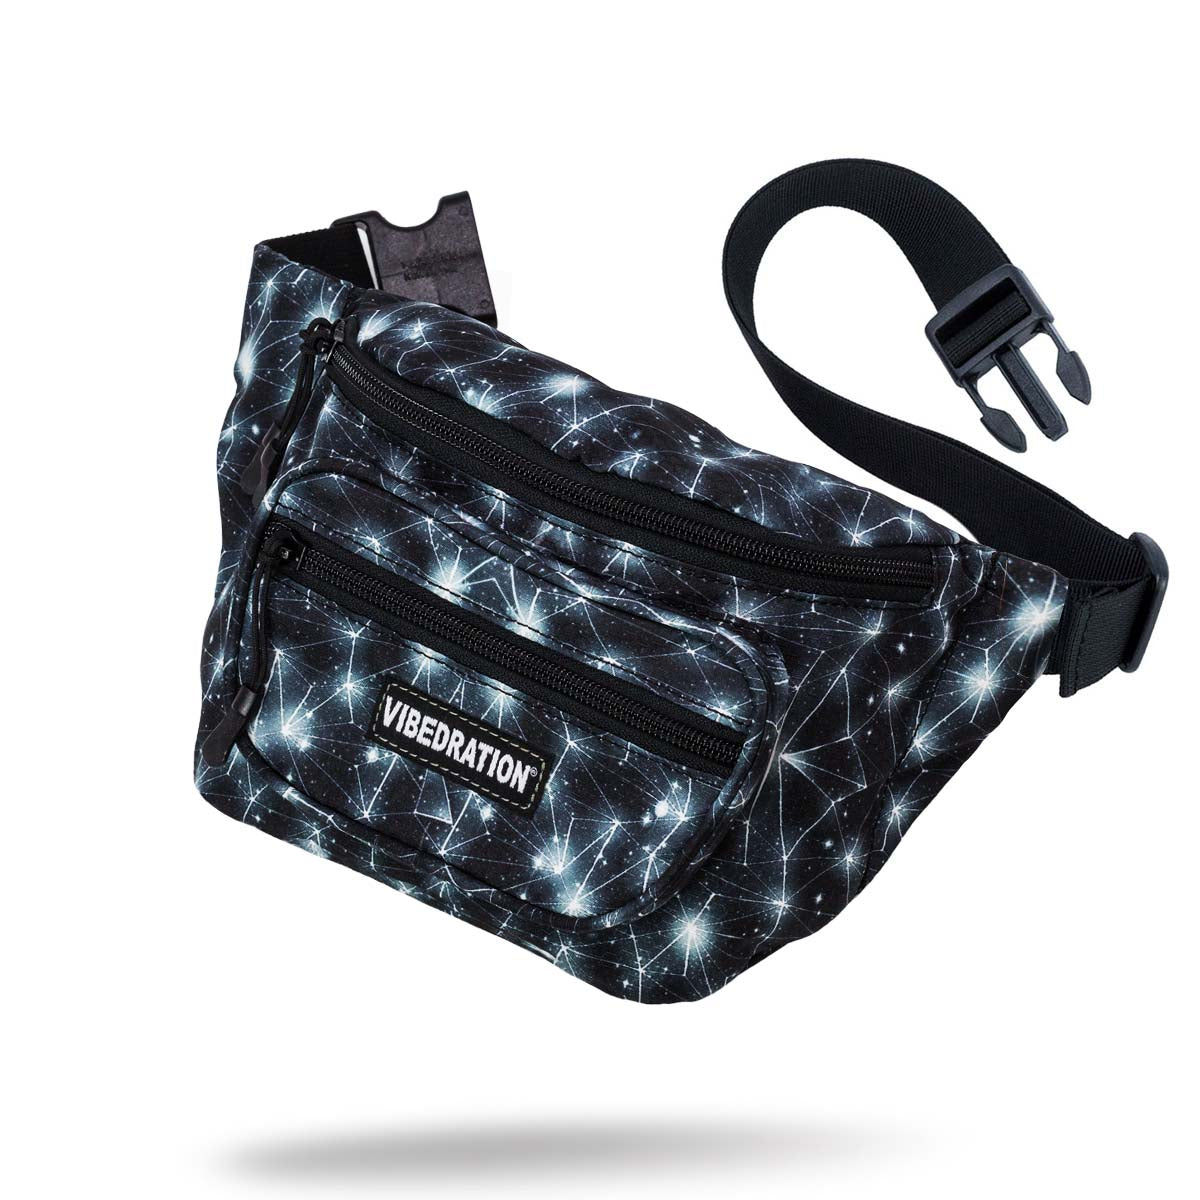 Black space printed fanny pack with pockets